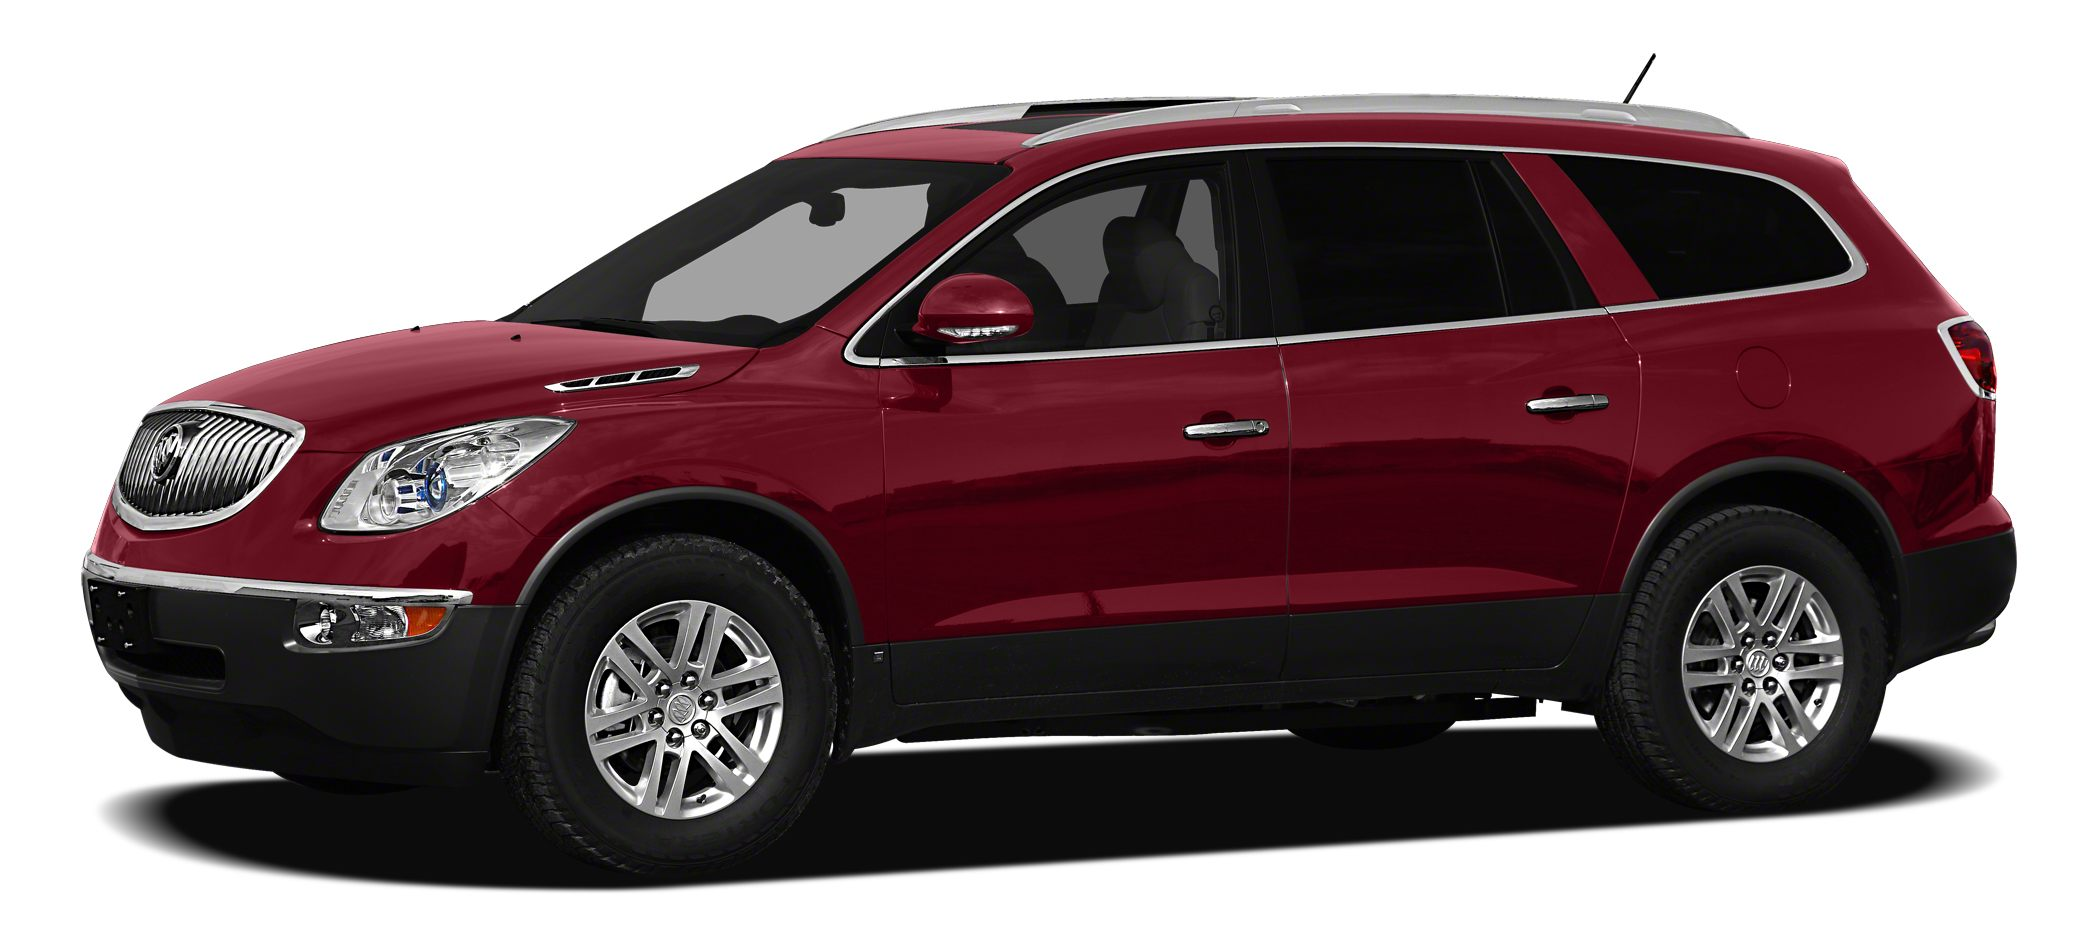 2012 Buick Enclave Leather Snag a score on this 2012 Buick Enclave Leather before its too late S